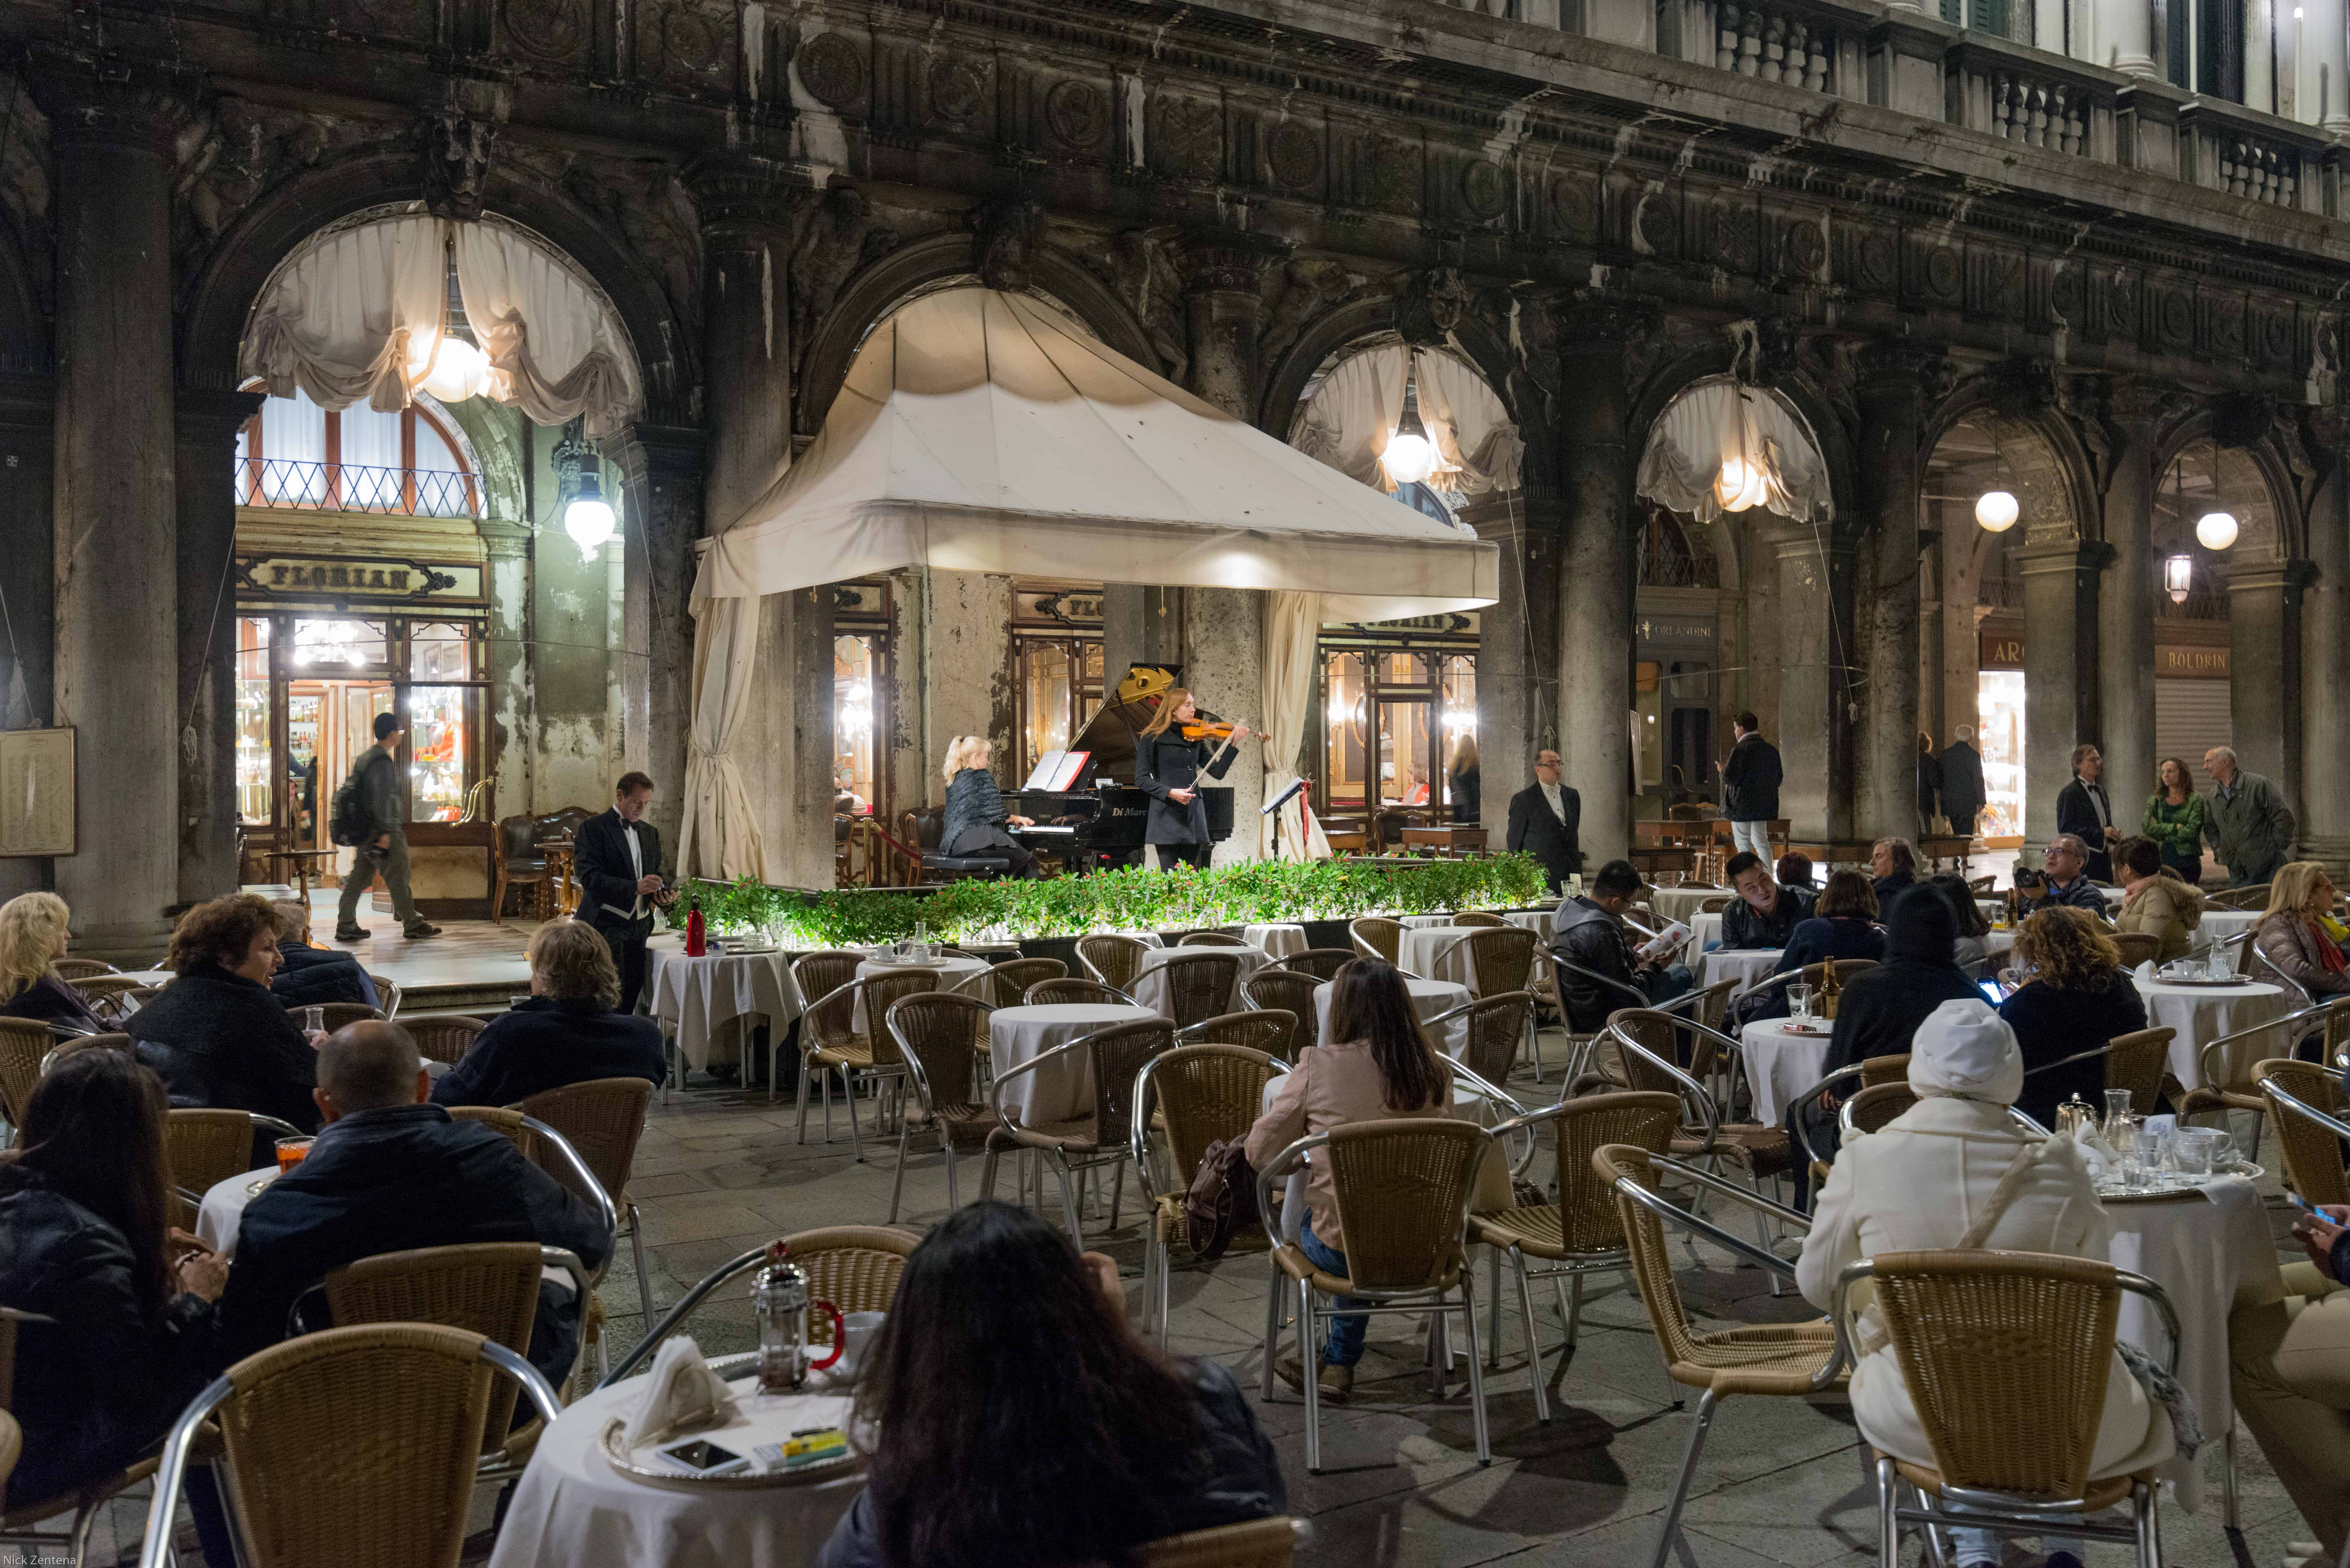 band playing in Piazza San Marco